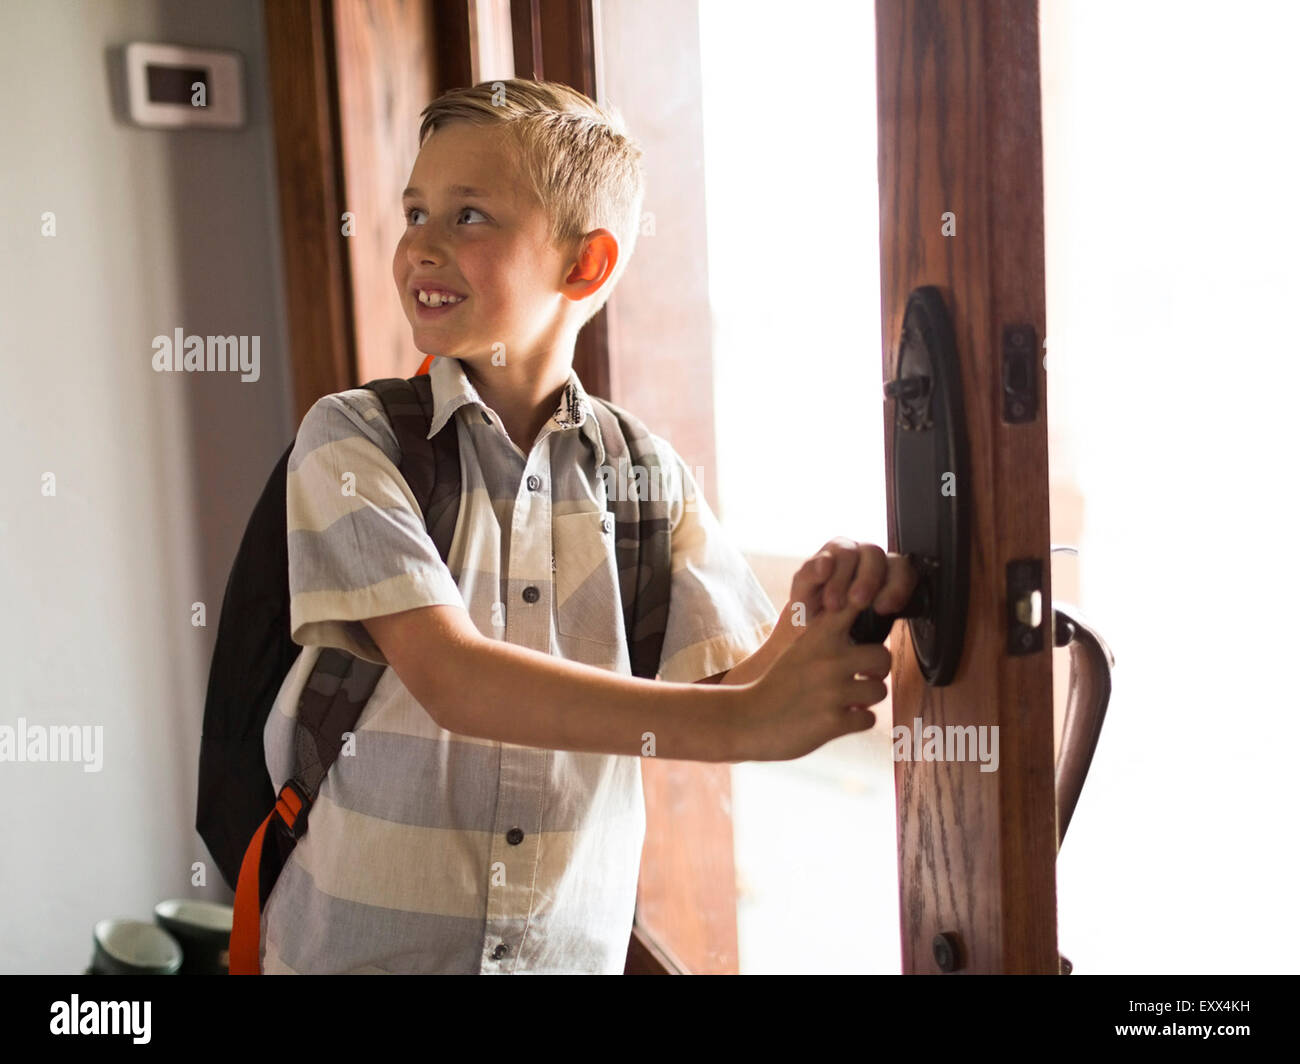 Smiling boy (6-7) leaving for school - Stock Image